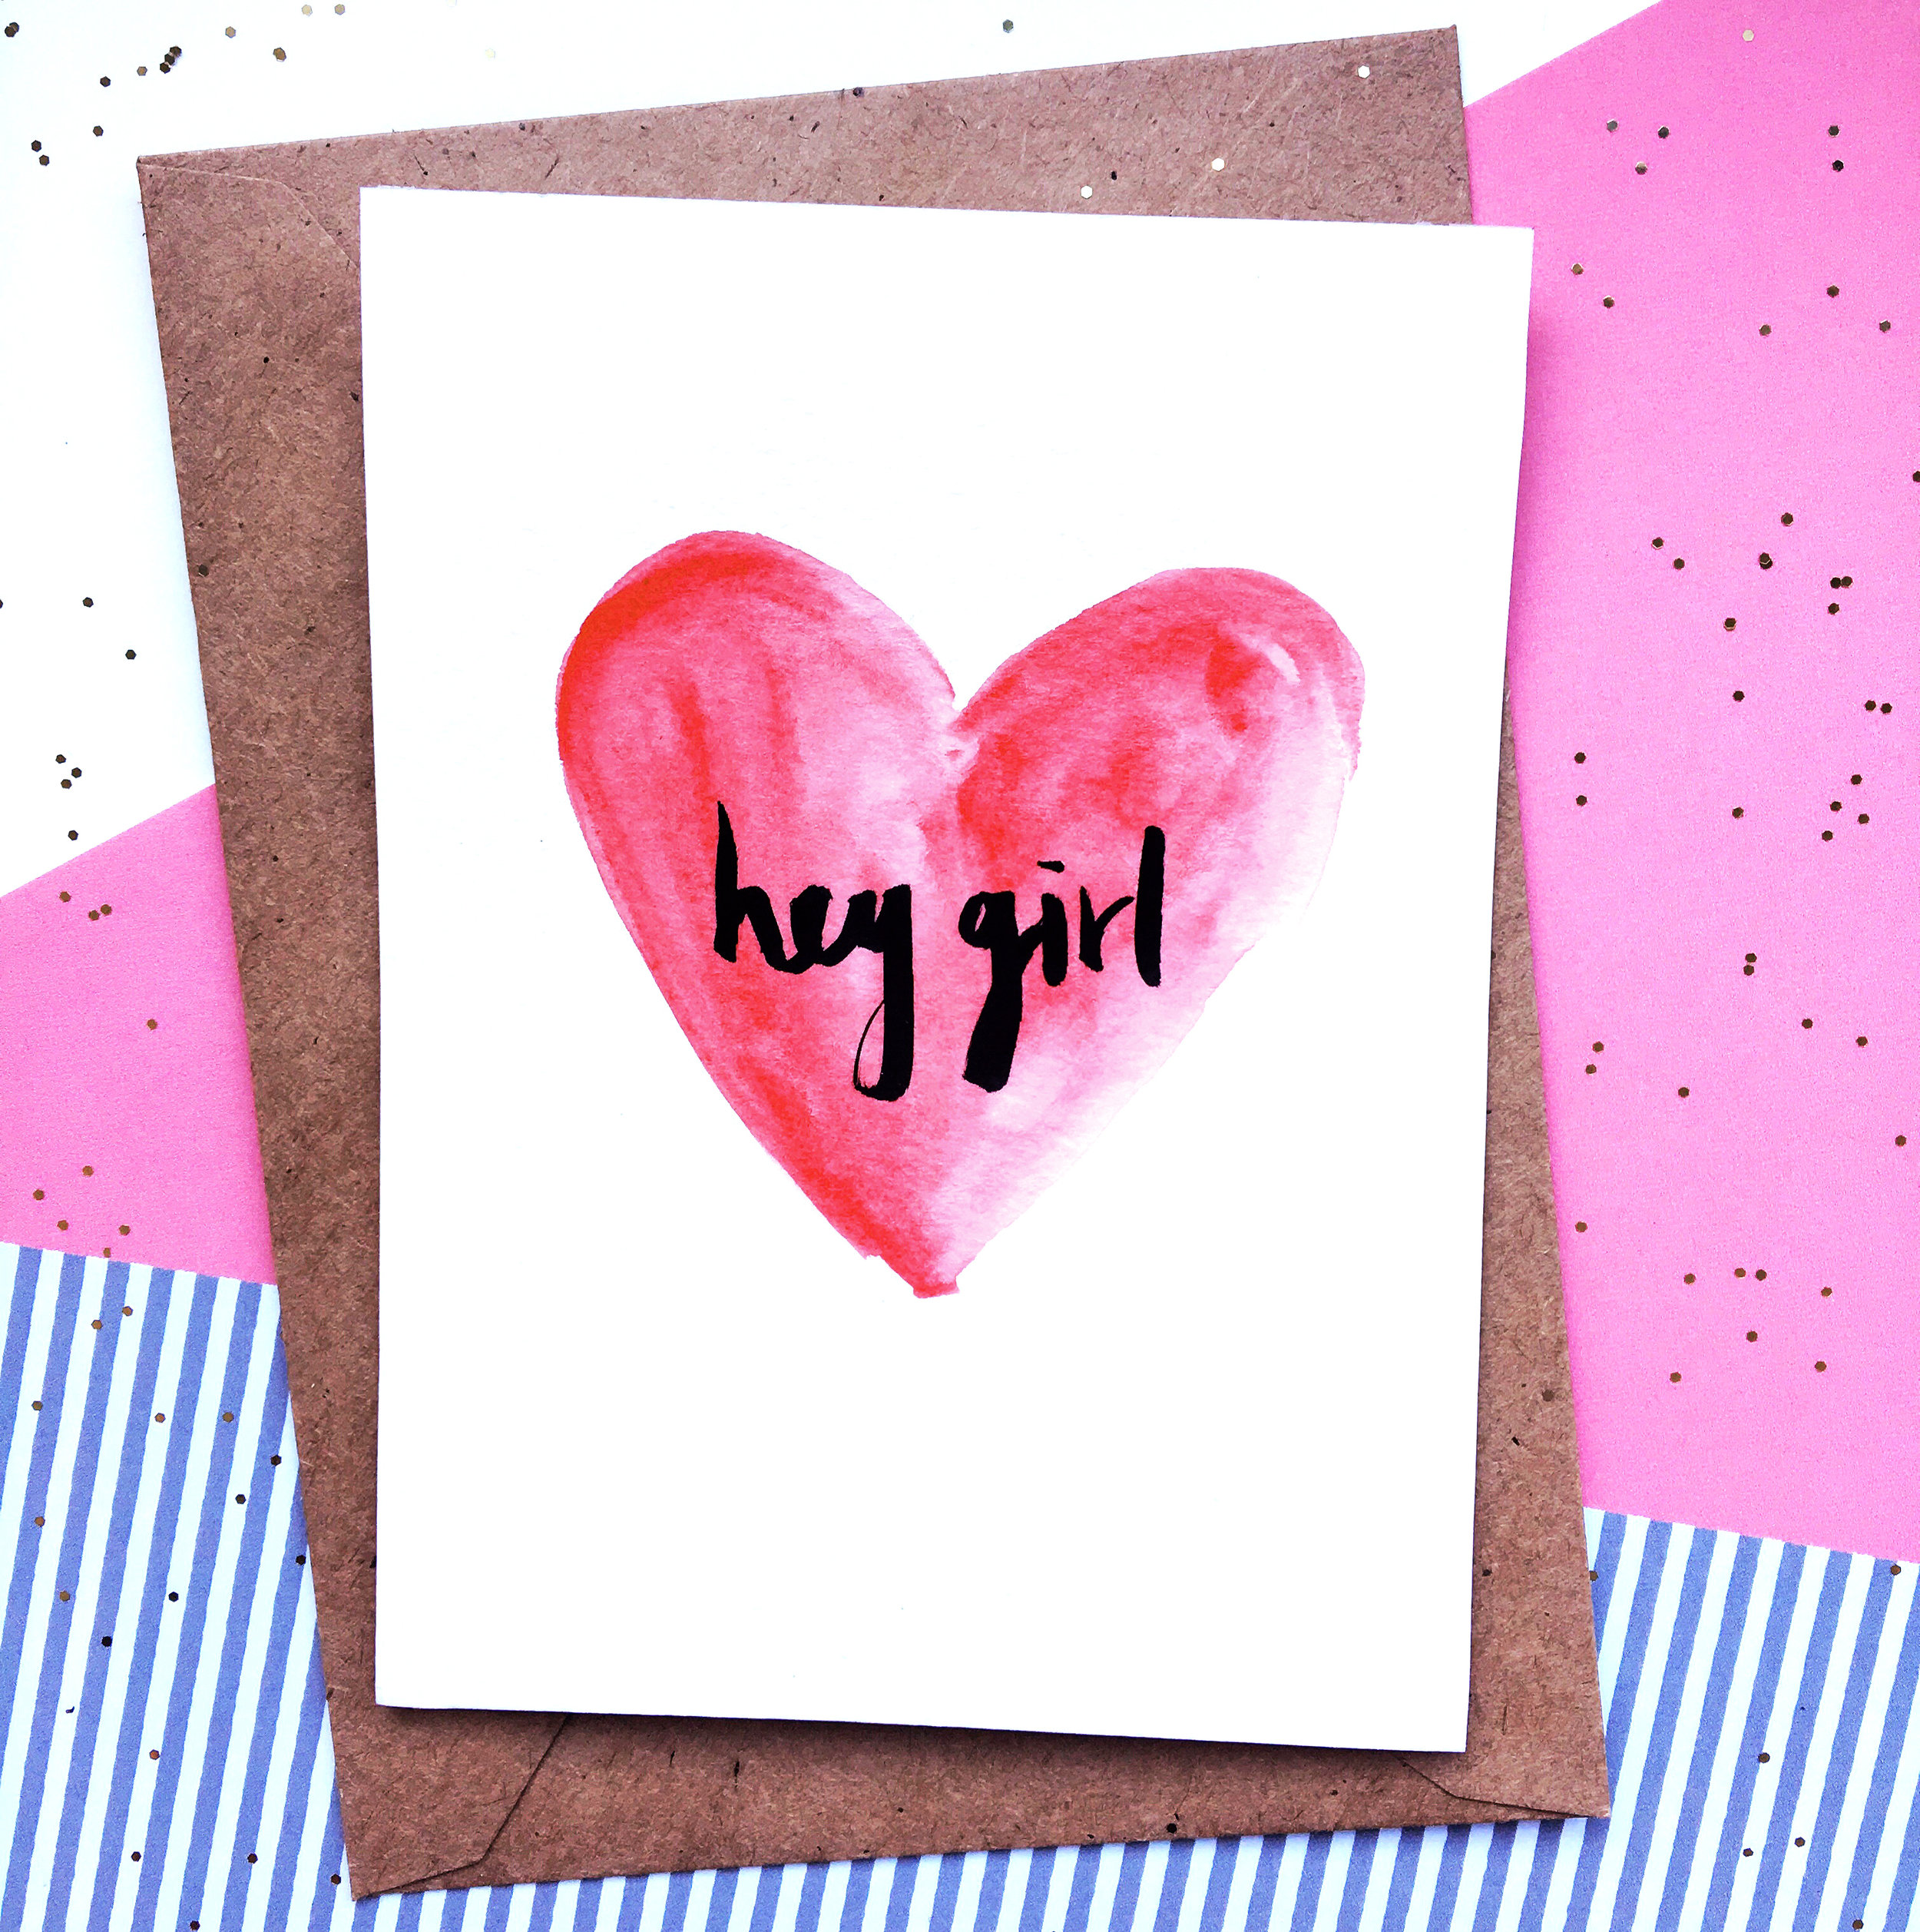 THE FUNKY FRESH / HEY GIRL VALENTINES CARD